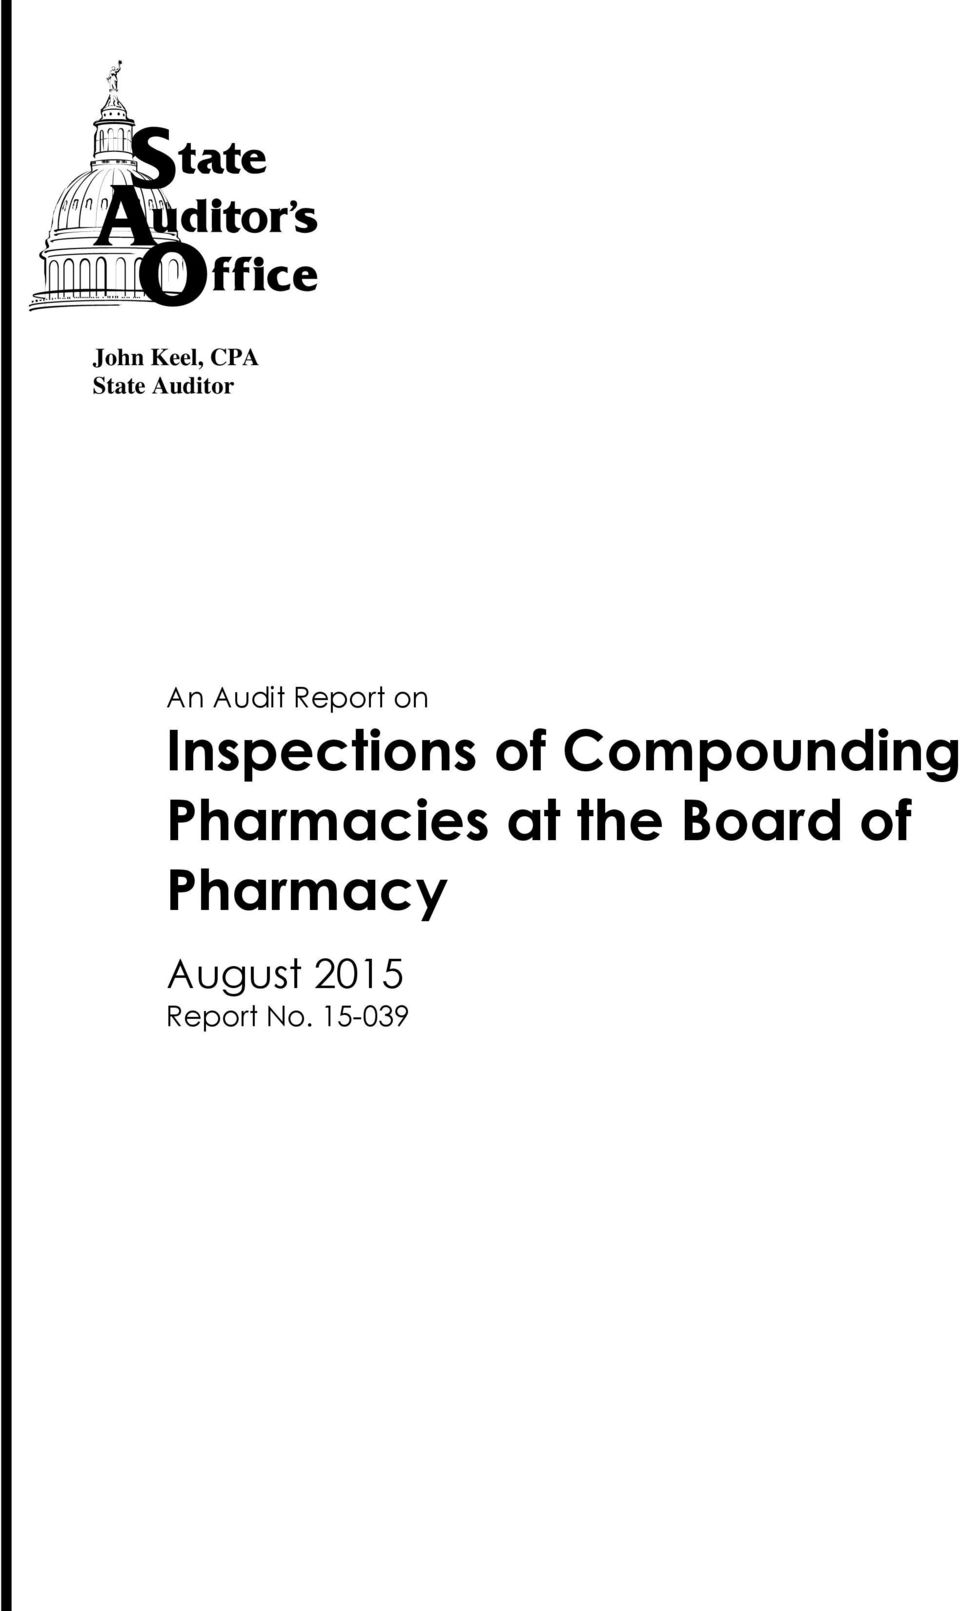 Compounding Pharmacies at the